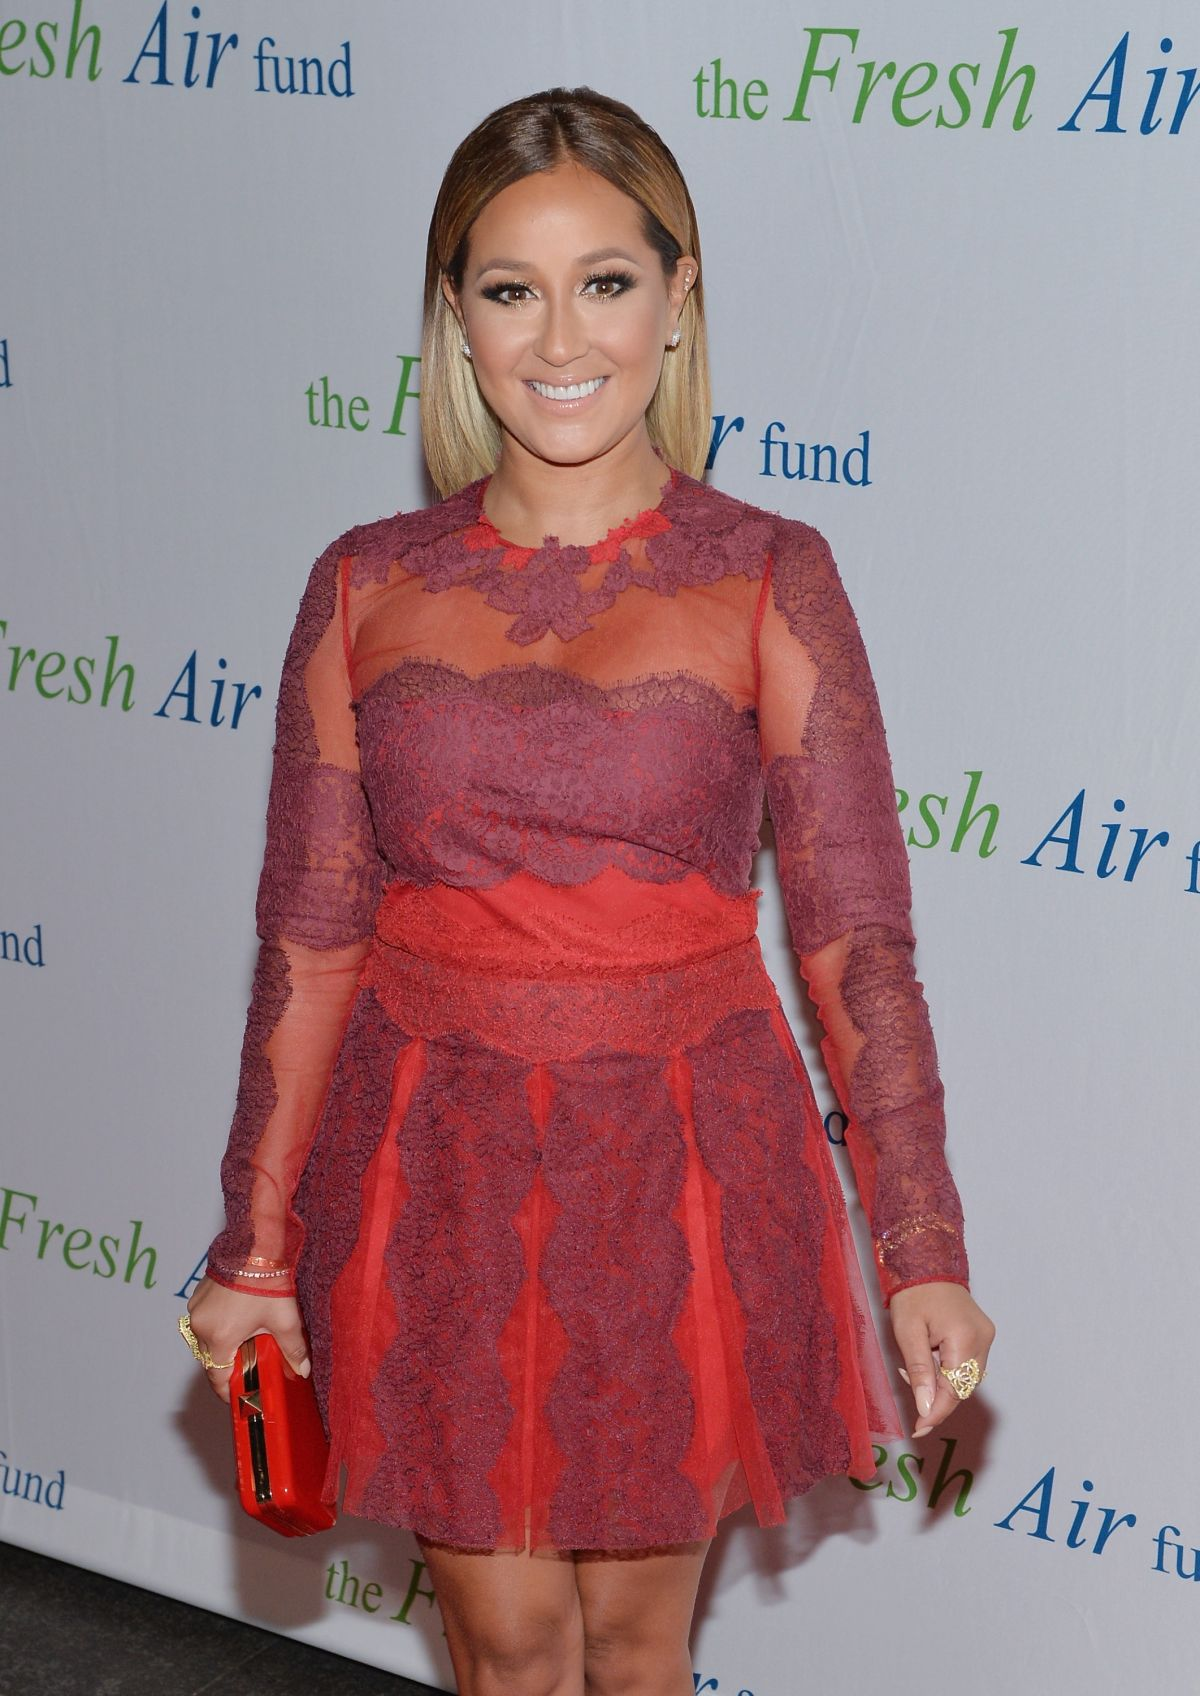 ADRIENNE BAILOM at Fresh Air Fund Honoring Our American Hero in New York